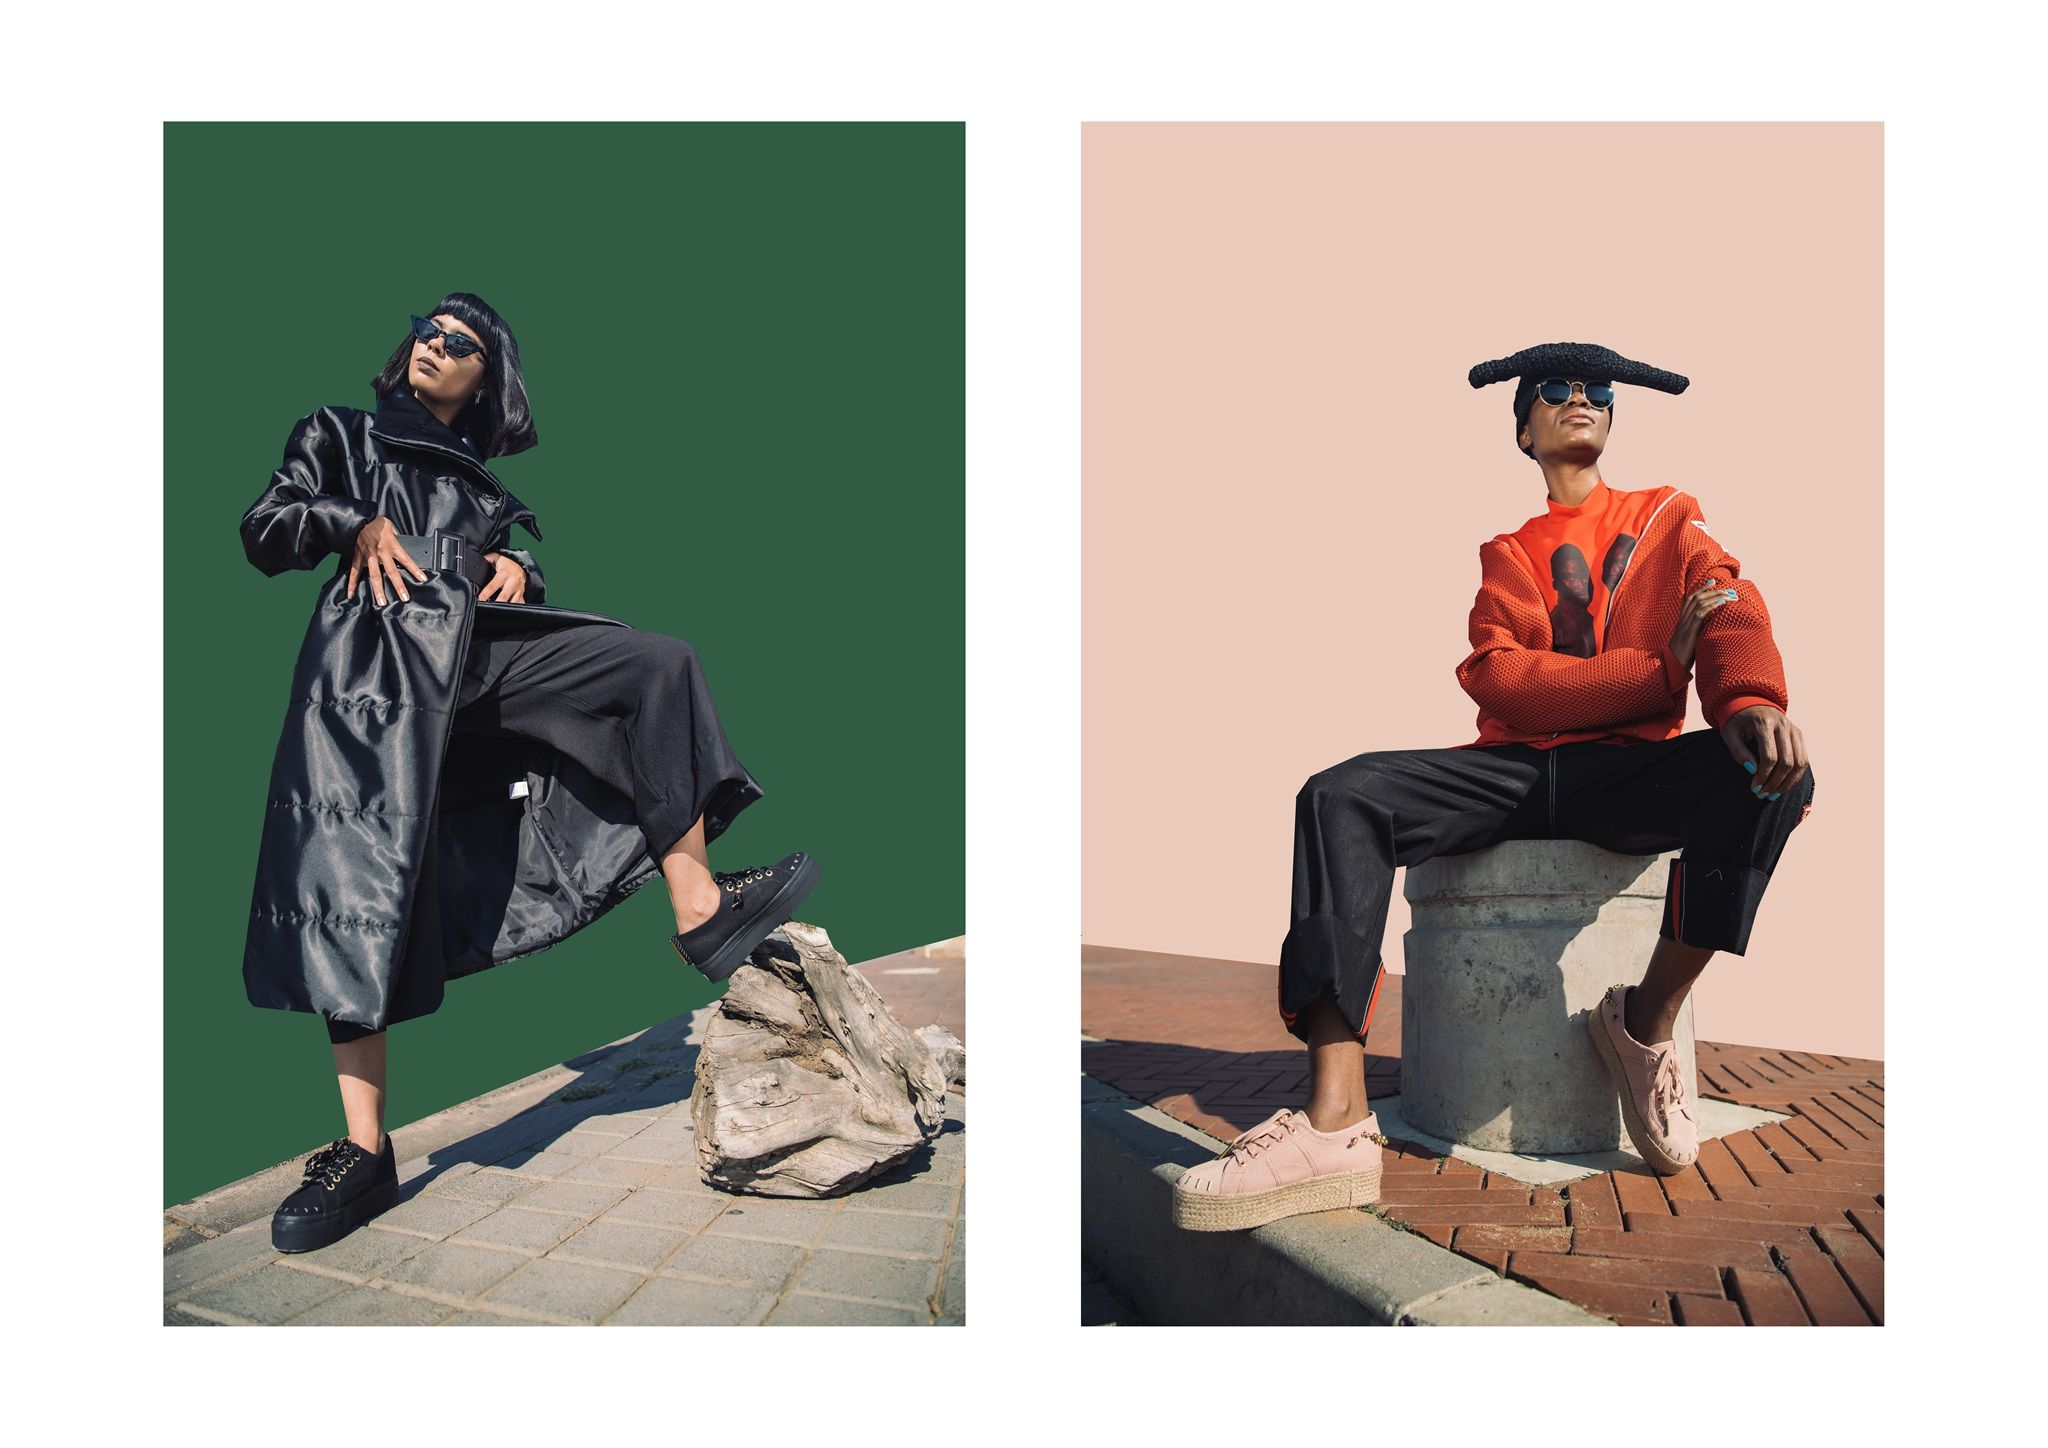 Superga X Pichulik Collaboration Is A Tale Of Three Cities photo